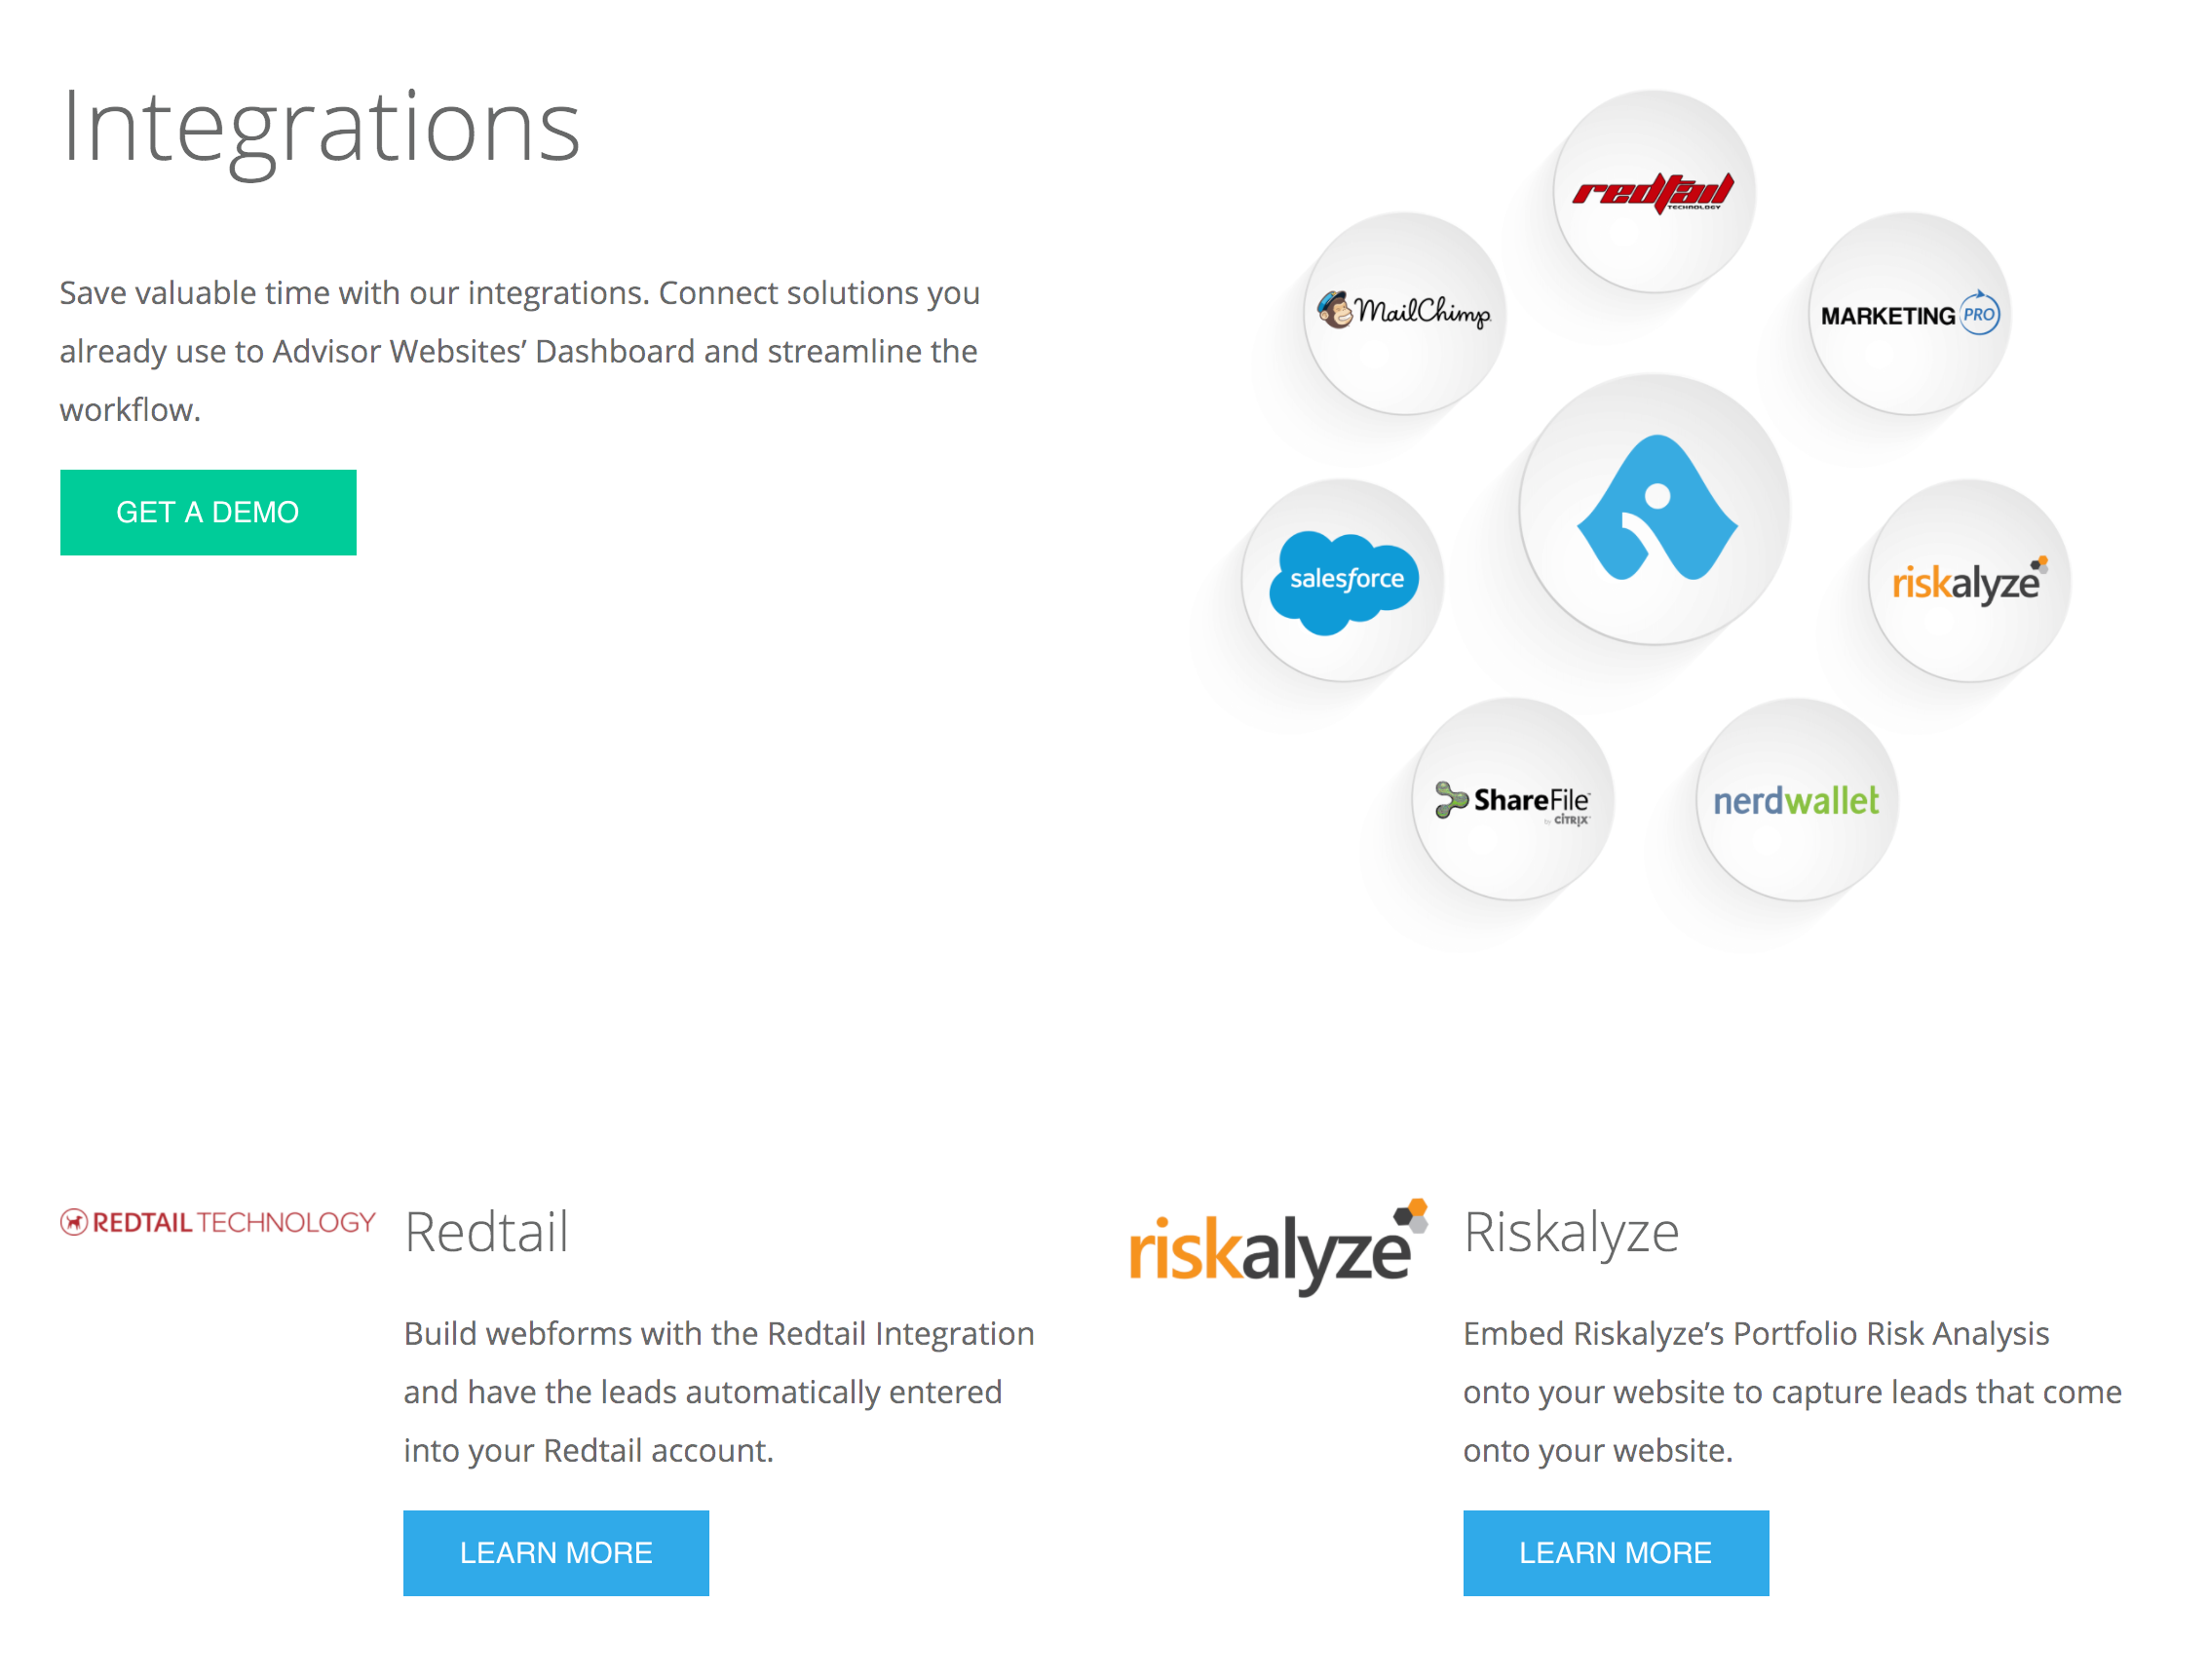 Advisor Websites Demo - Integrations___Partners___Advisor_Websites.png